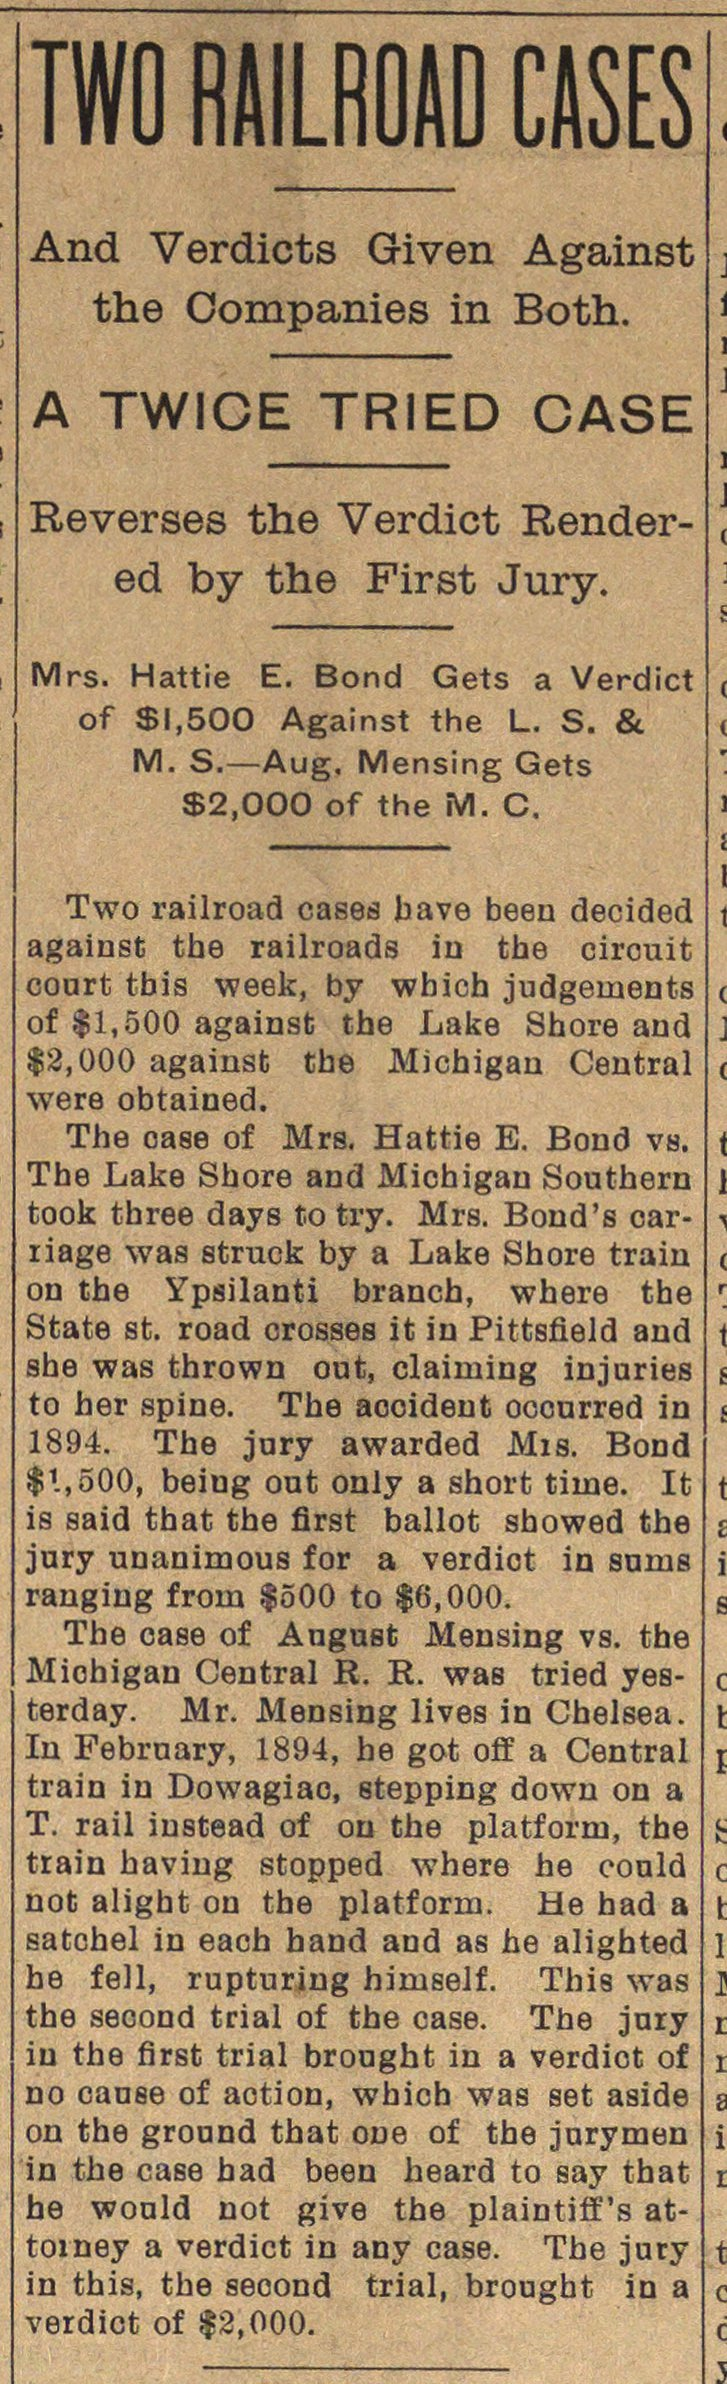 Two Railroad Cases image